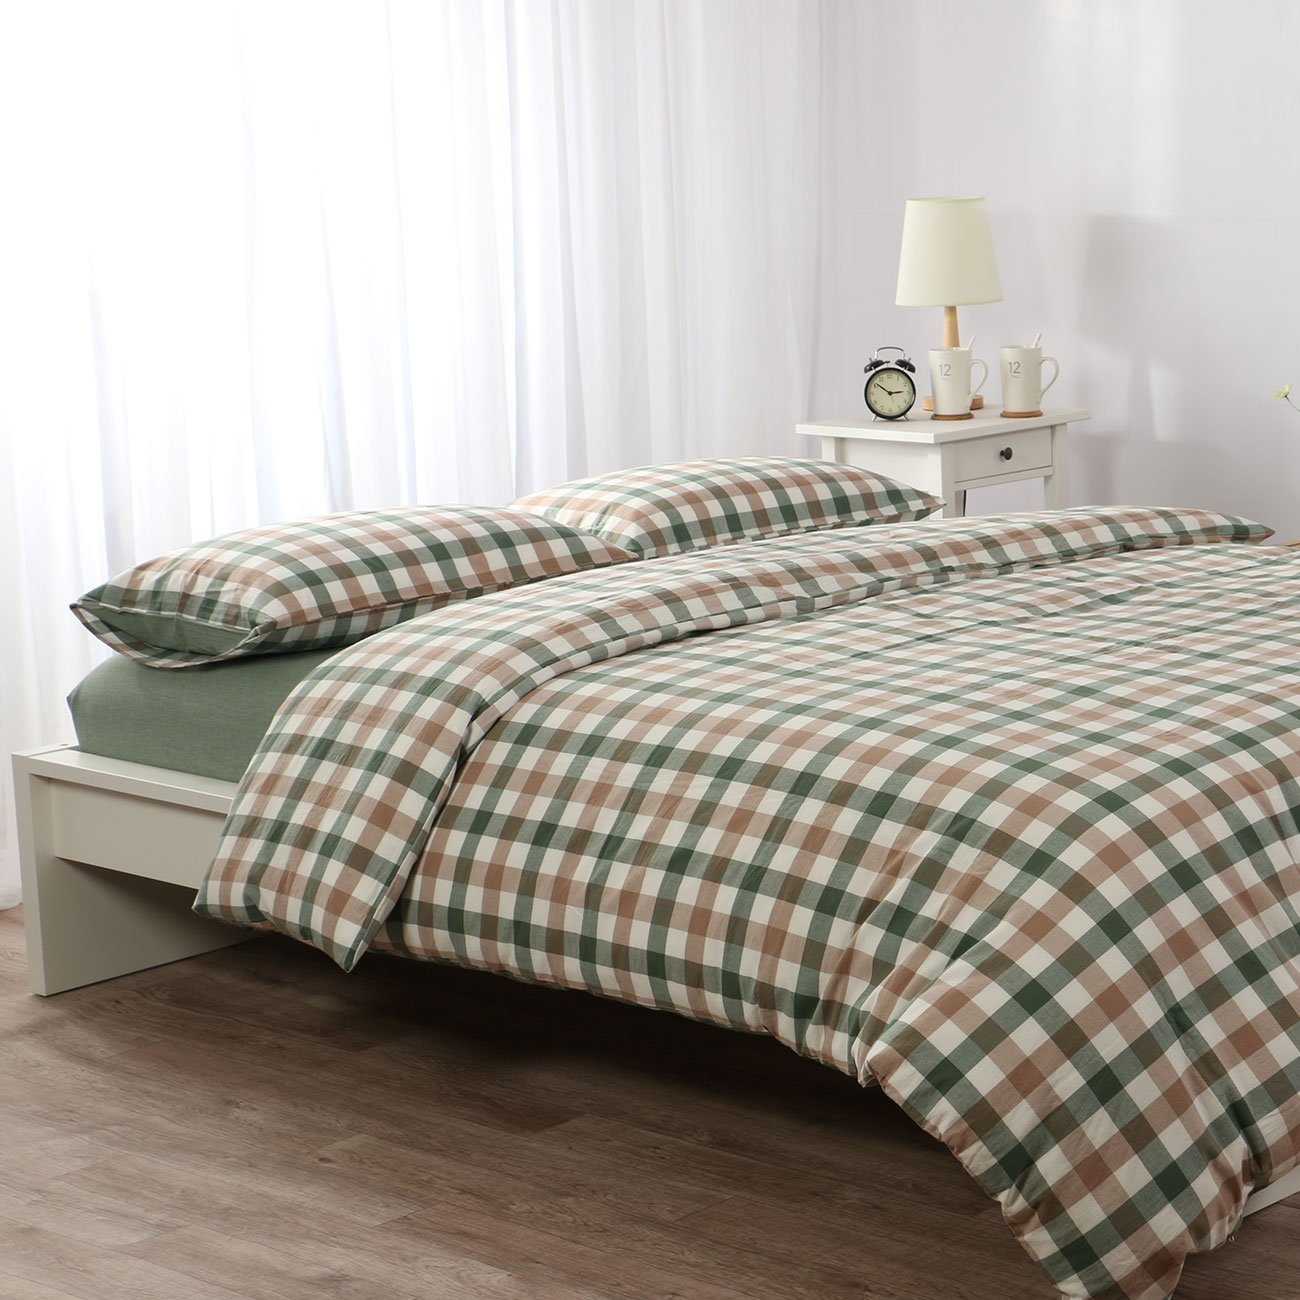 4 Pieces Duvet Cover Set Green and Coffee Grid Plaid Geometric Modern Pattern Printed Bedding Set Comforter Set 1 Flat Sheet 1 Duvet Cover and 2 Pillow Cases by YEHO Art Gallery (Full Size)